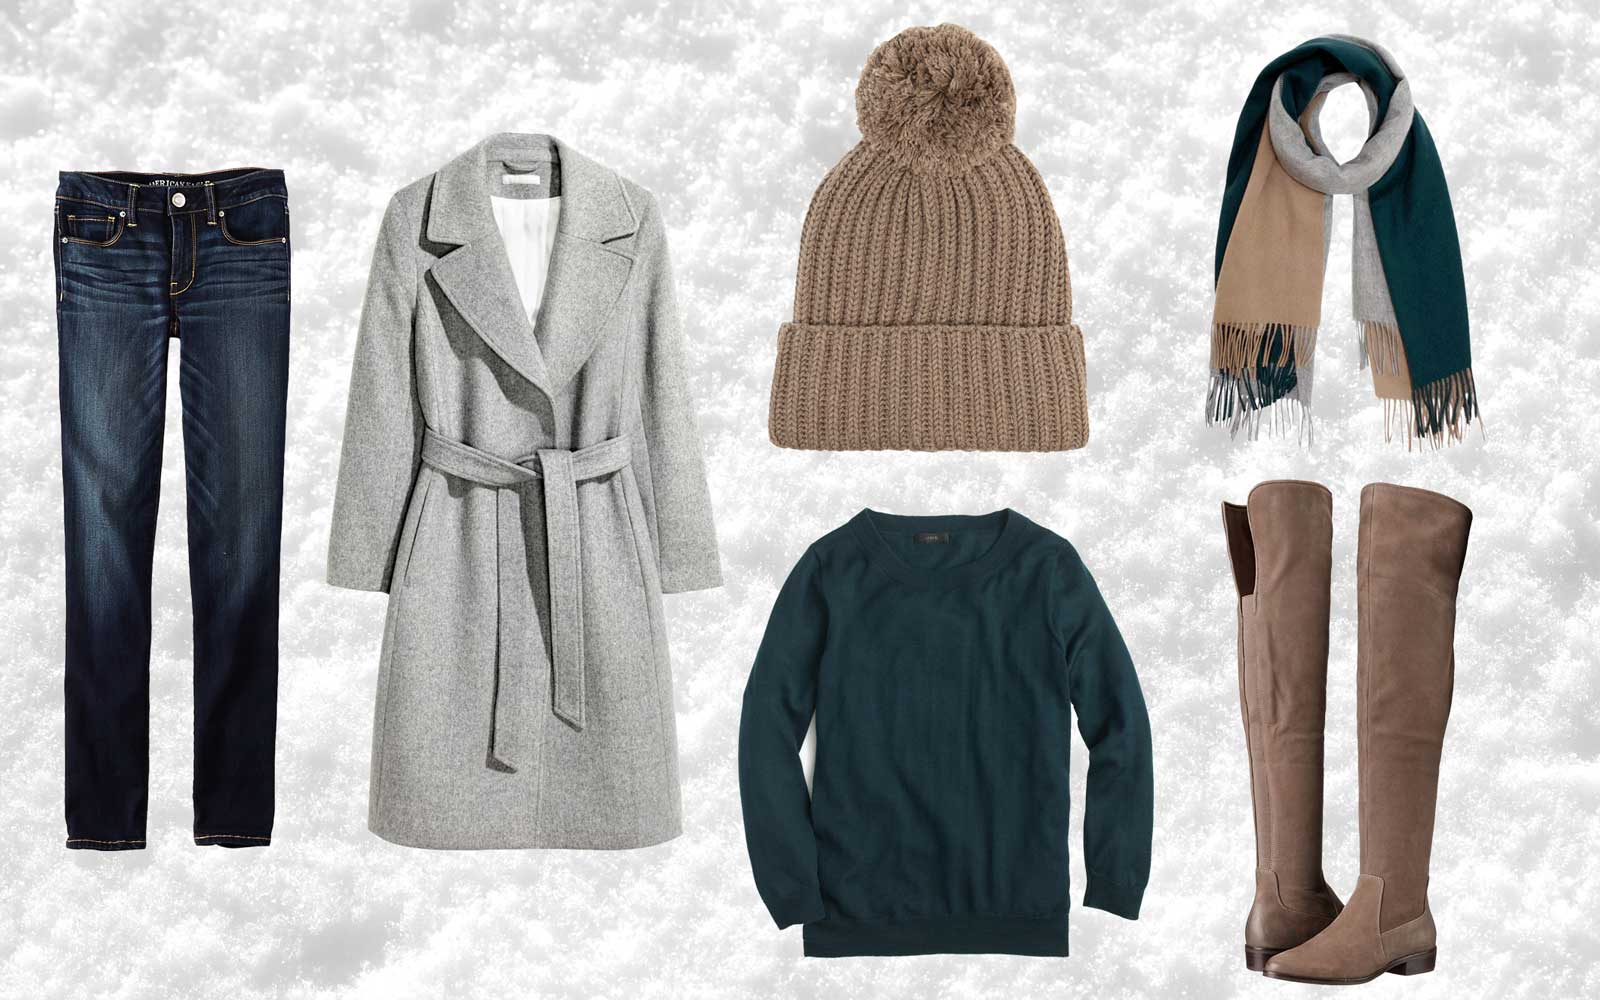 f270de6c0754 Stylish Winter Travel Outfits